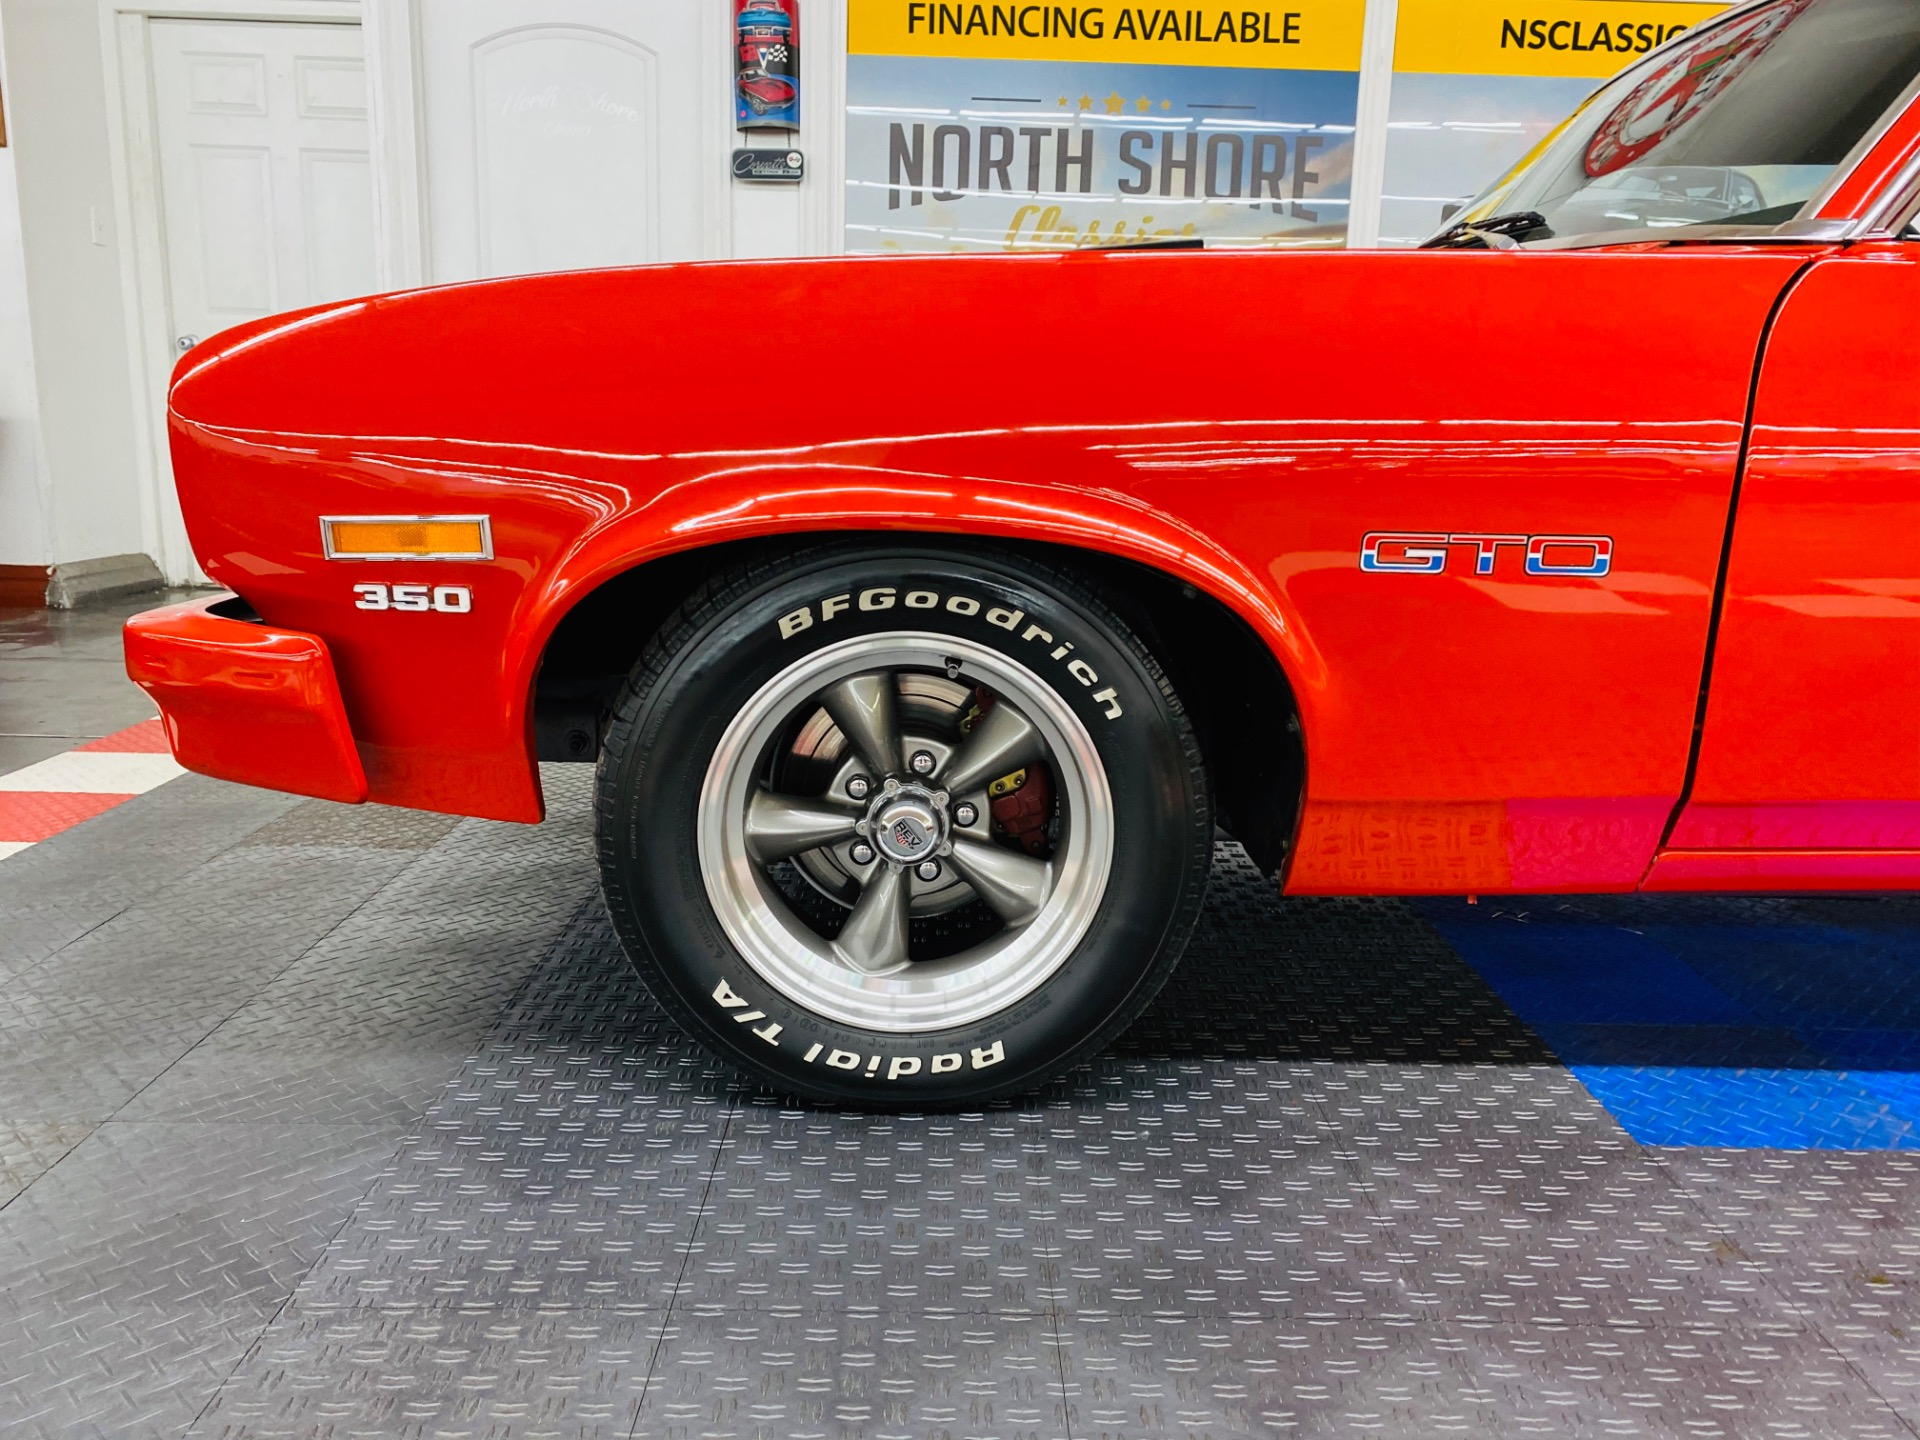 Used 1974 Pontiac GTO - RARE GTO - SUPER CLEAN - UPGRADED SUSPENSION - SEE VIDEO | Mundelein, IL